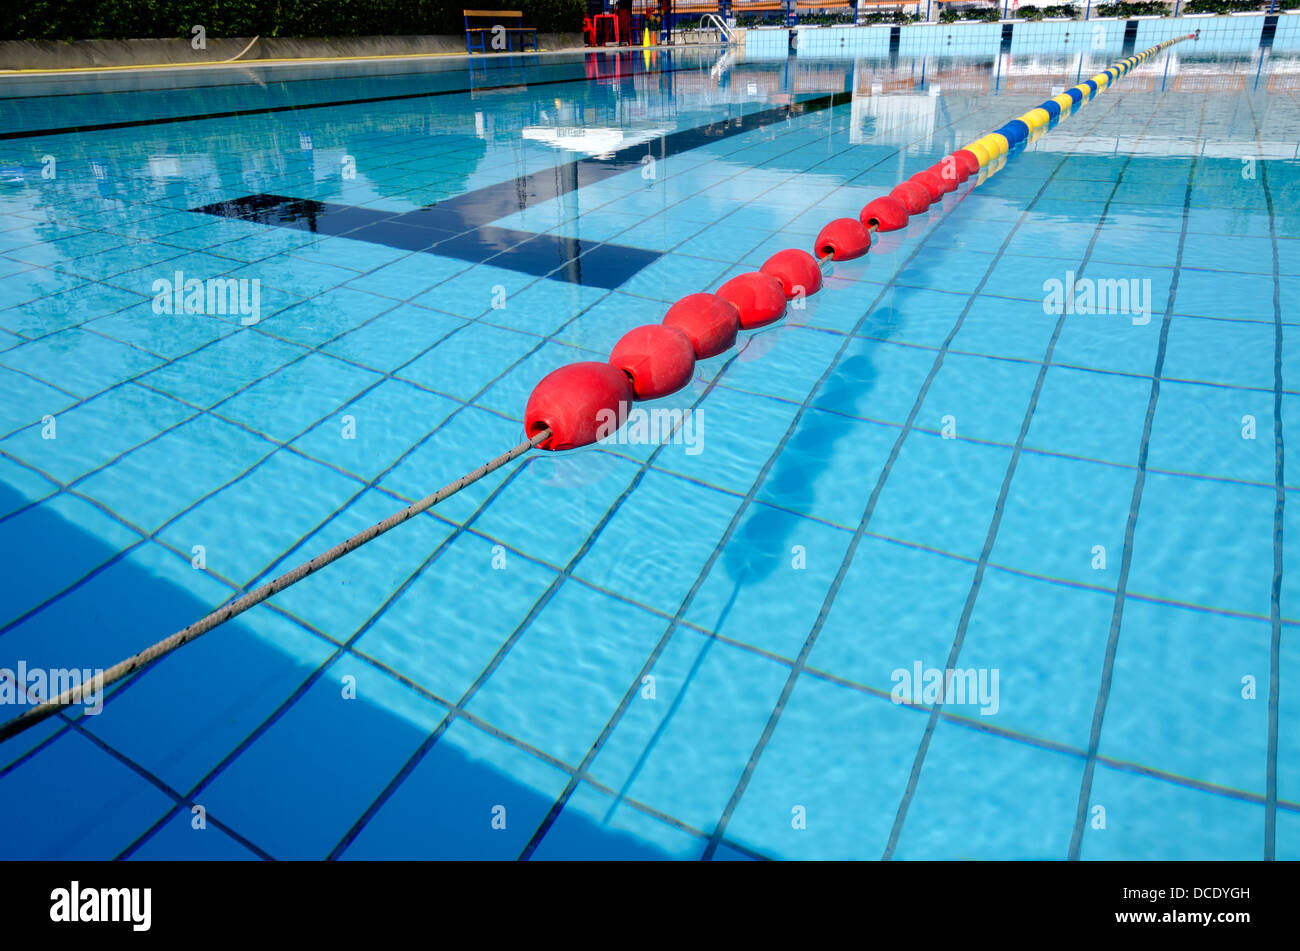 stock photo lane olympic size pool - Olympic Swimming Pool Lanes